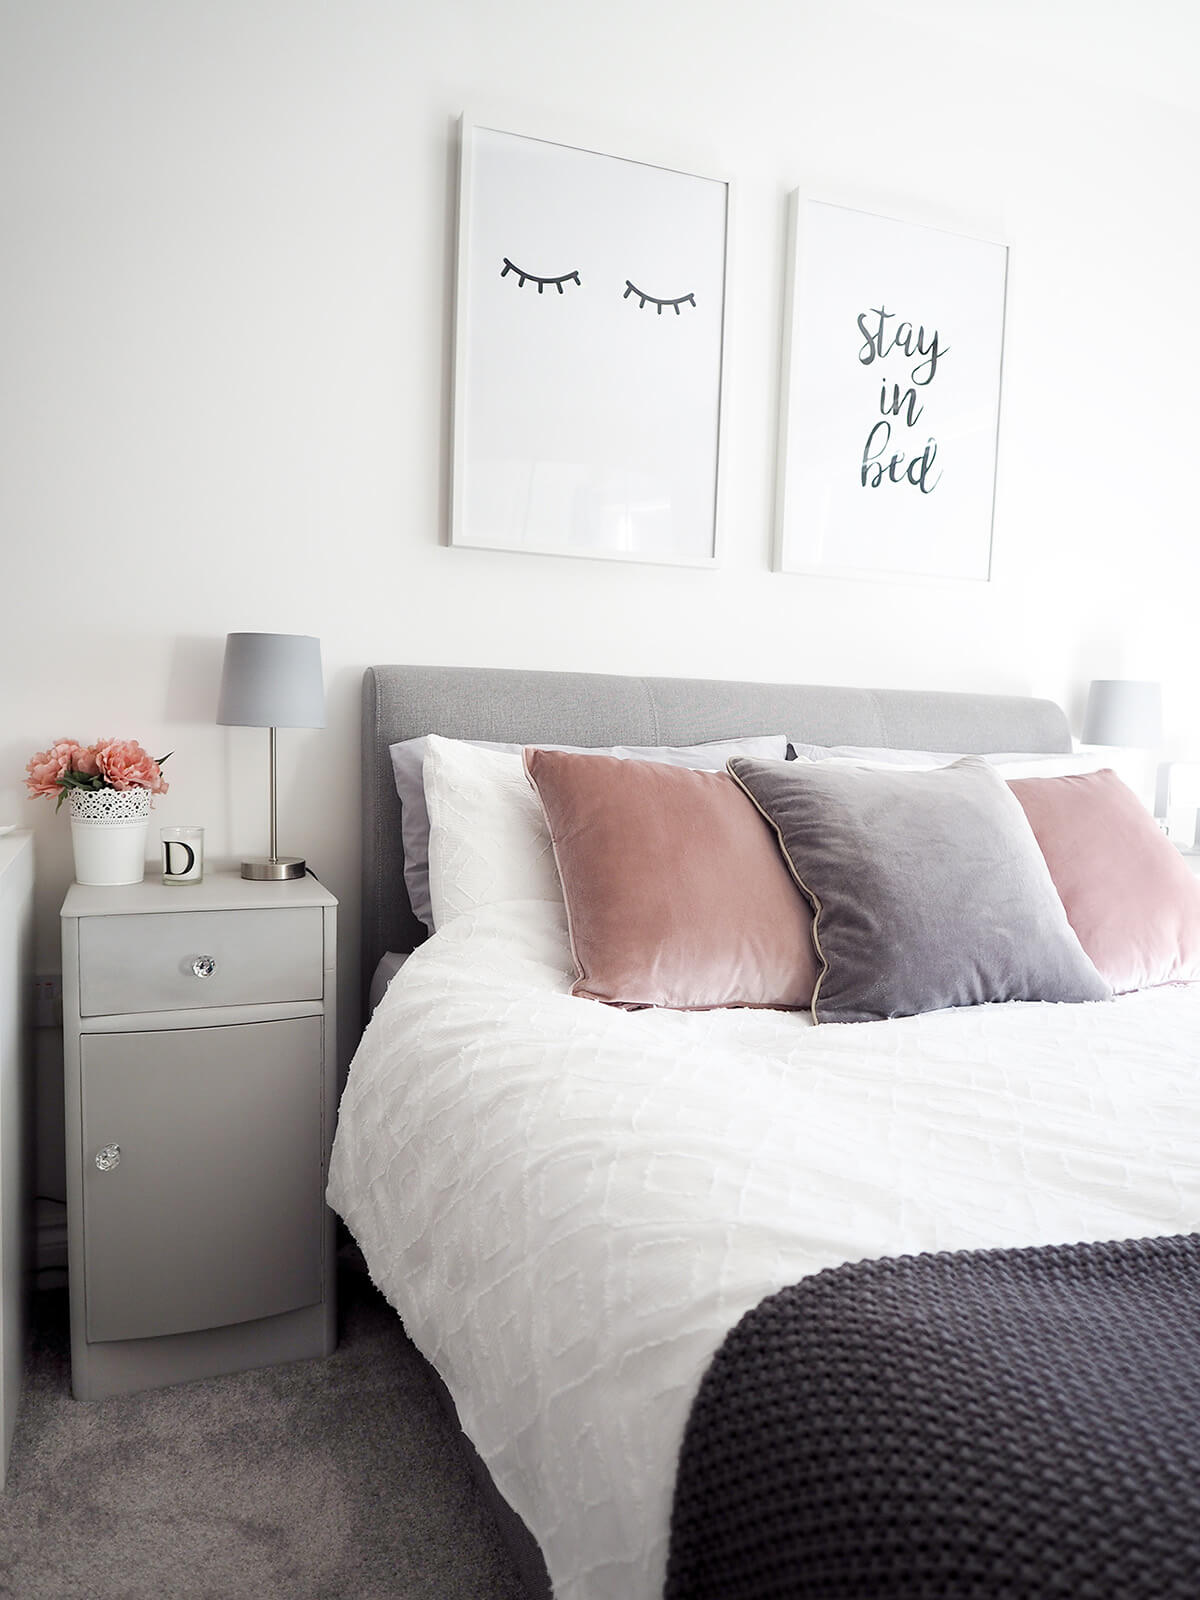 14 Best Trendy Bedroom Decor and Design Ideas for 2020 on Trendy Room  id=12107